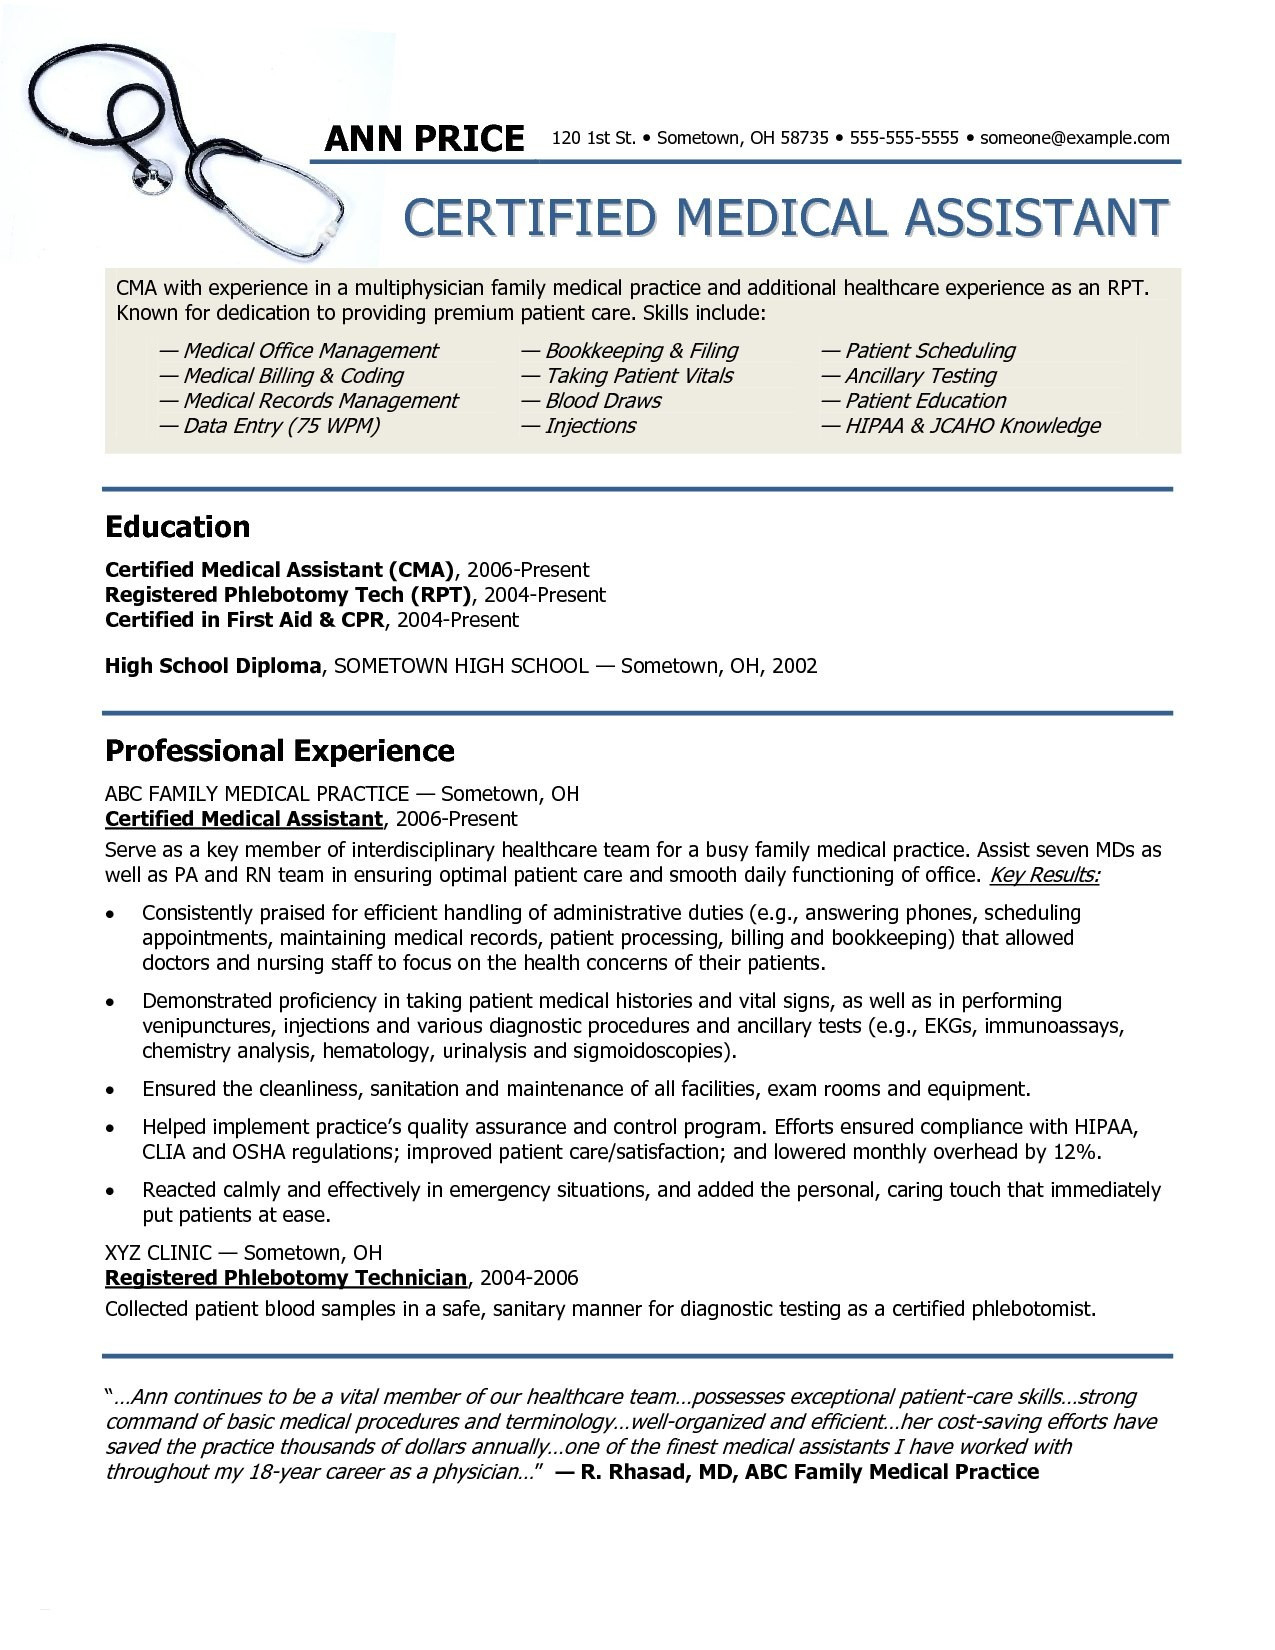 Medical assistant Duties for Resume - Medical assistant Resume Unique Medical assistant Resumes New